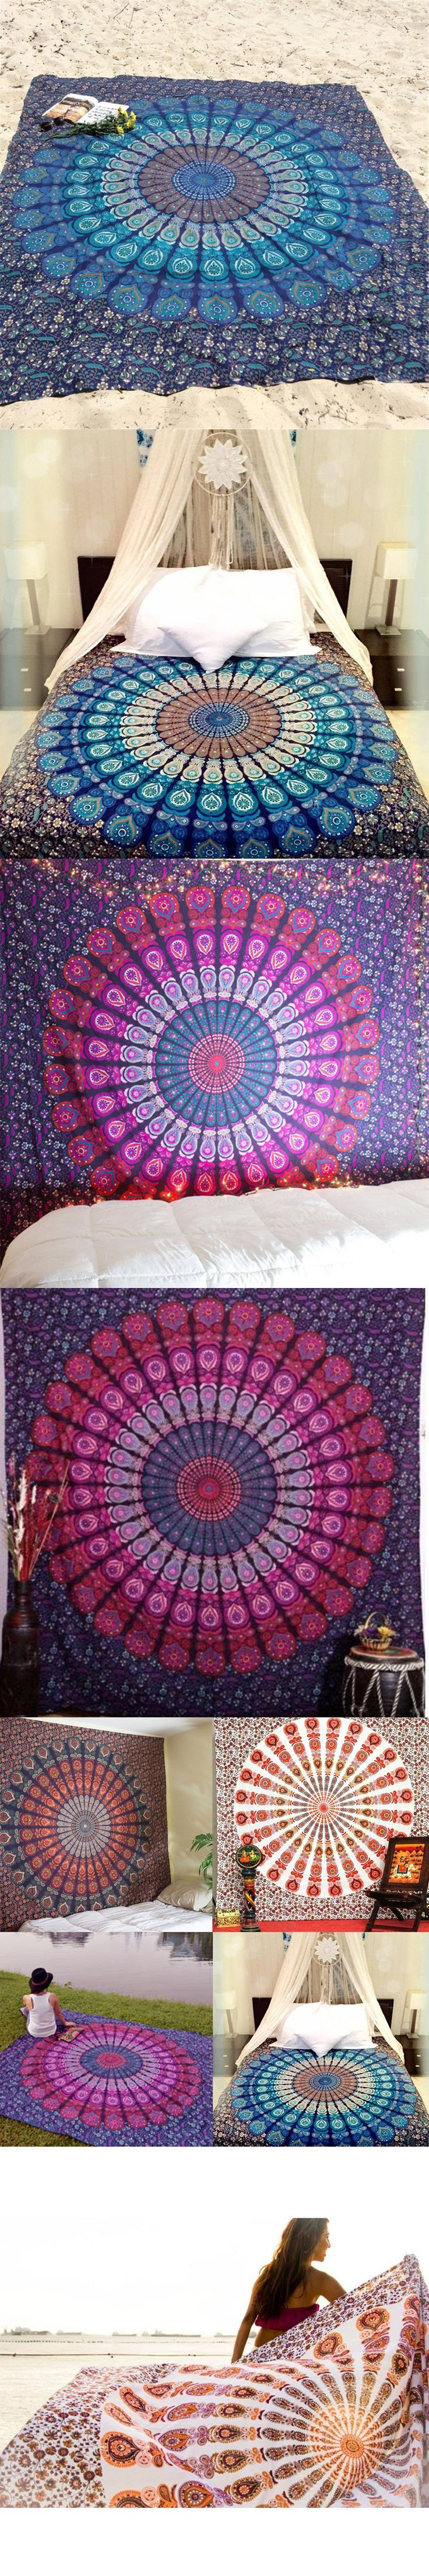 New Indian Mandala Peacock Printed Tapestry Wall Hanging Hippie Boho Table Cloth Beach Throw Towel Yoga Mat Home Decor 210*148cm $14.53